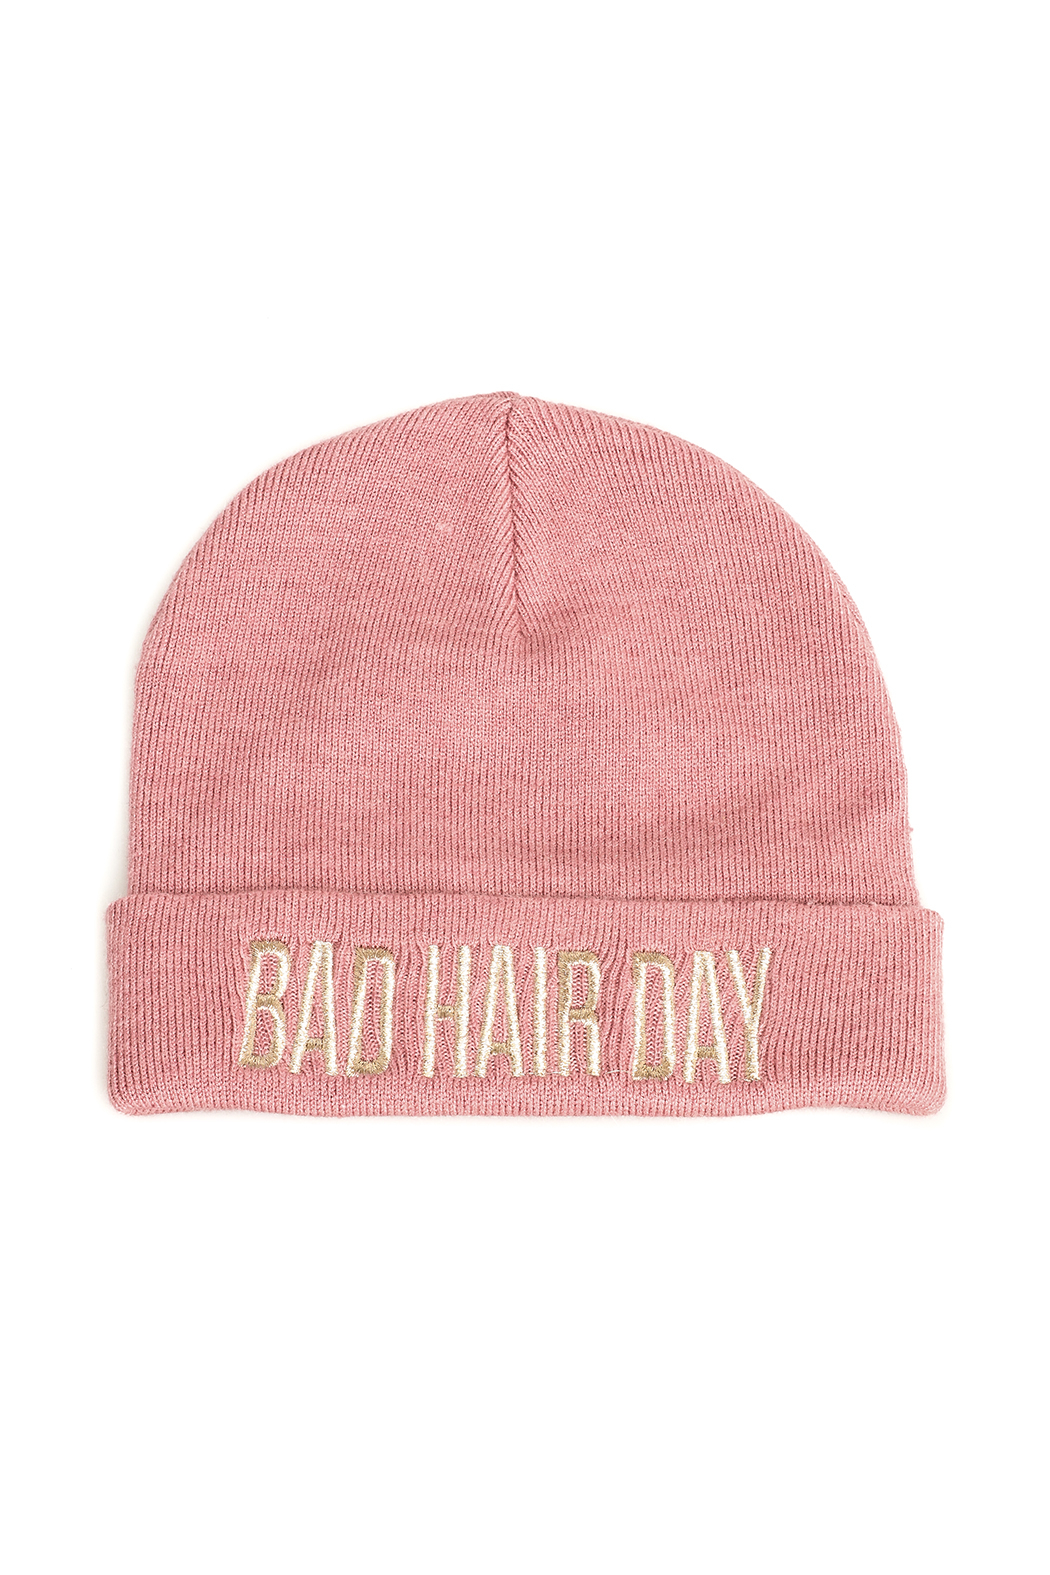 david and young Bad Hair Day Beanie - Front Cropped Image